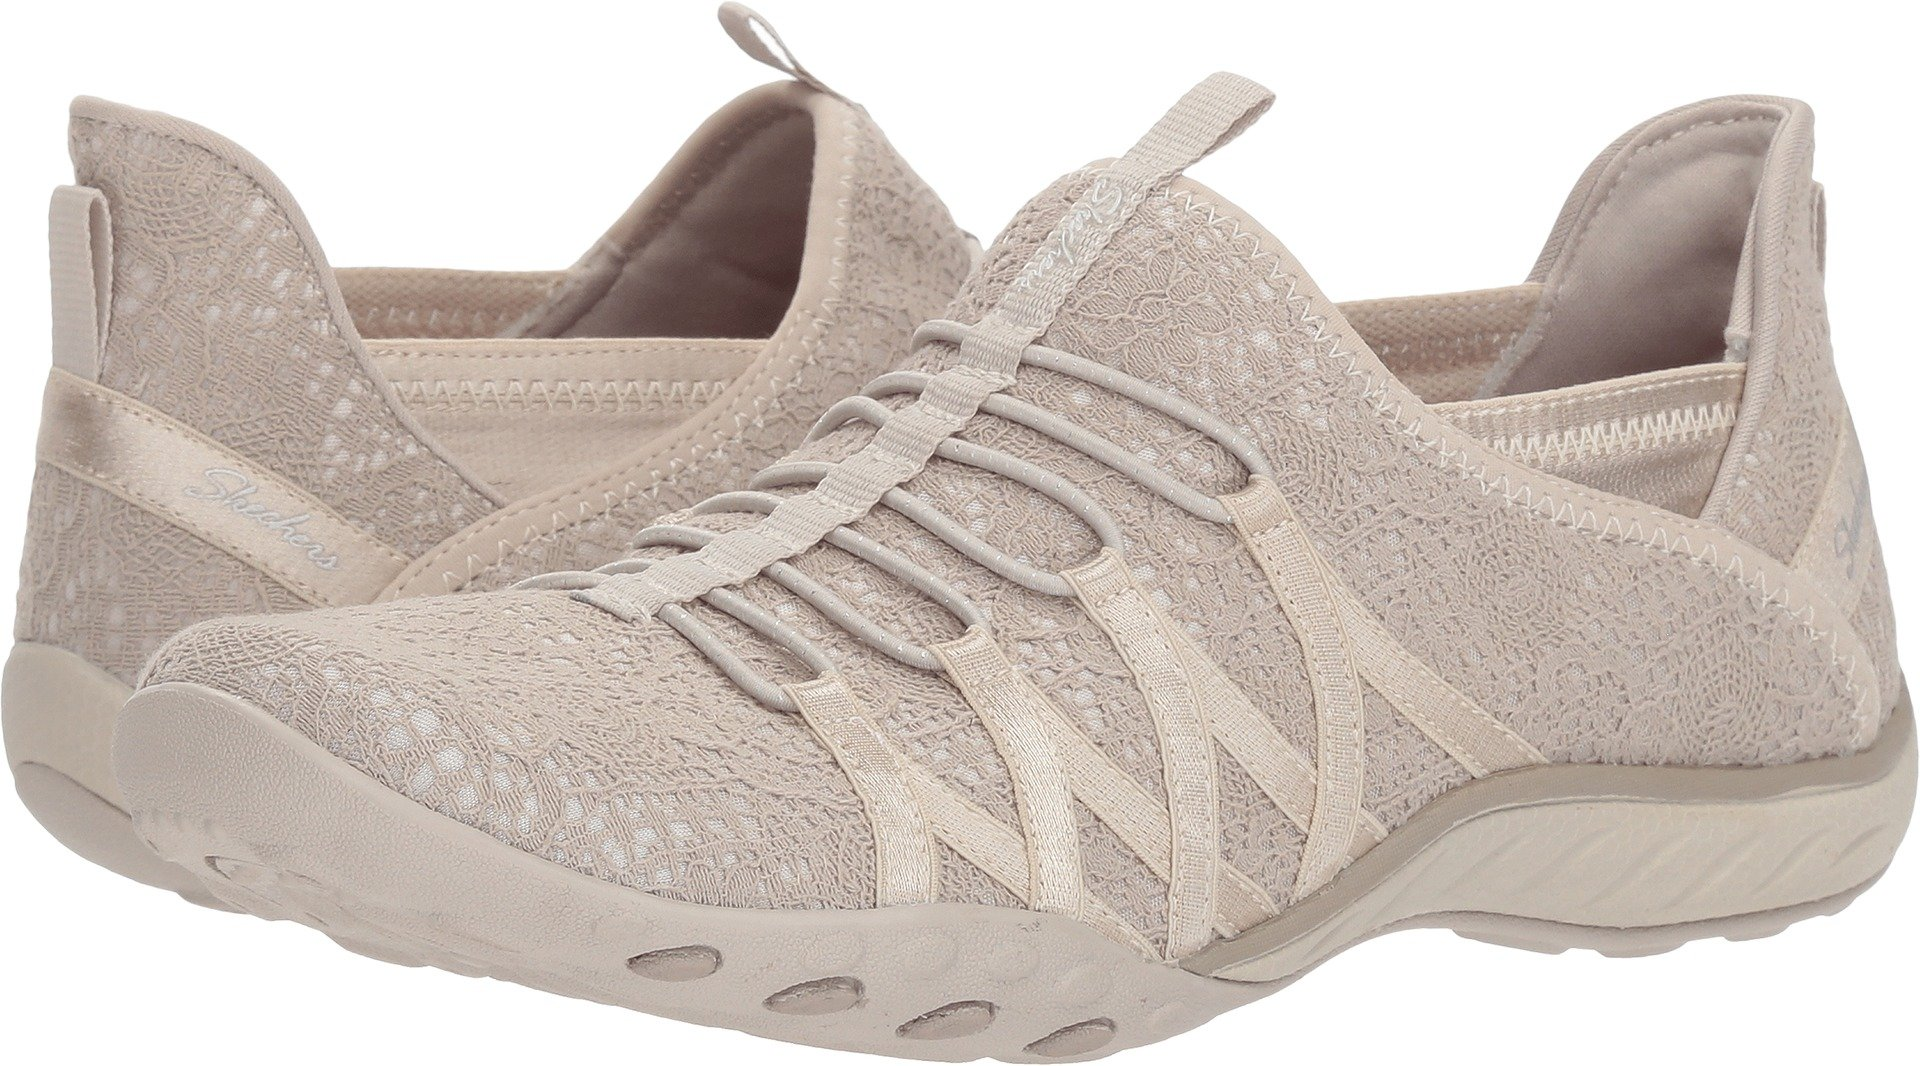 Skechers Relaxed Fit Breathe Easy Harmonia Womens Slip On Bungee Sneakers Natural 5.5